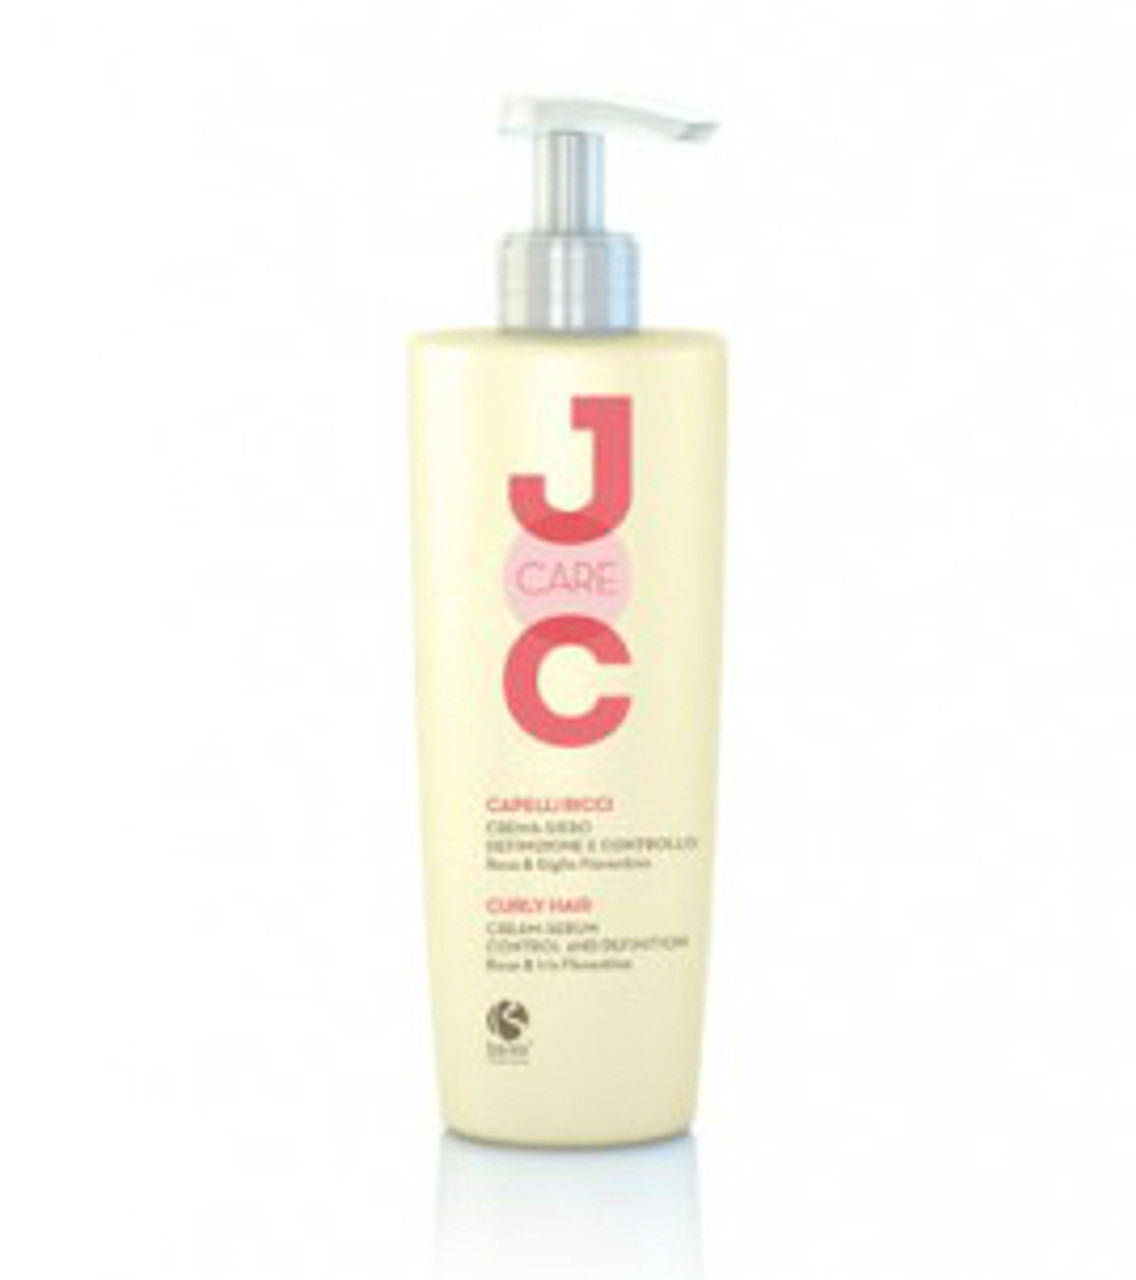 Barex Italiana JOC Cream-Serum Control and Definition, 5.8 fl oz (250 ml)